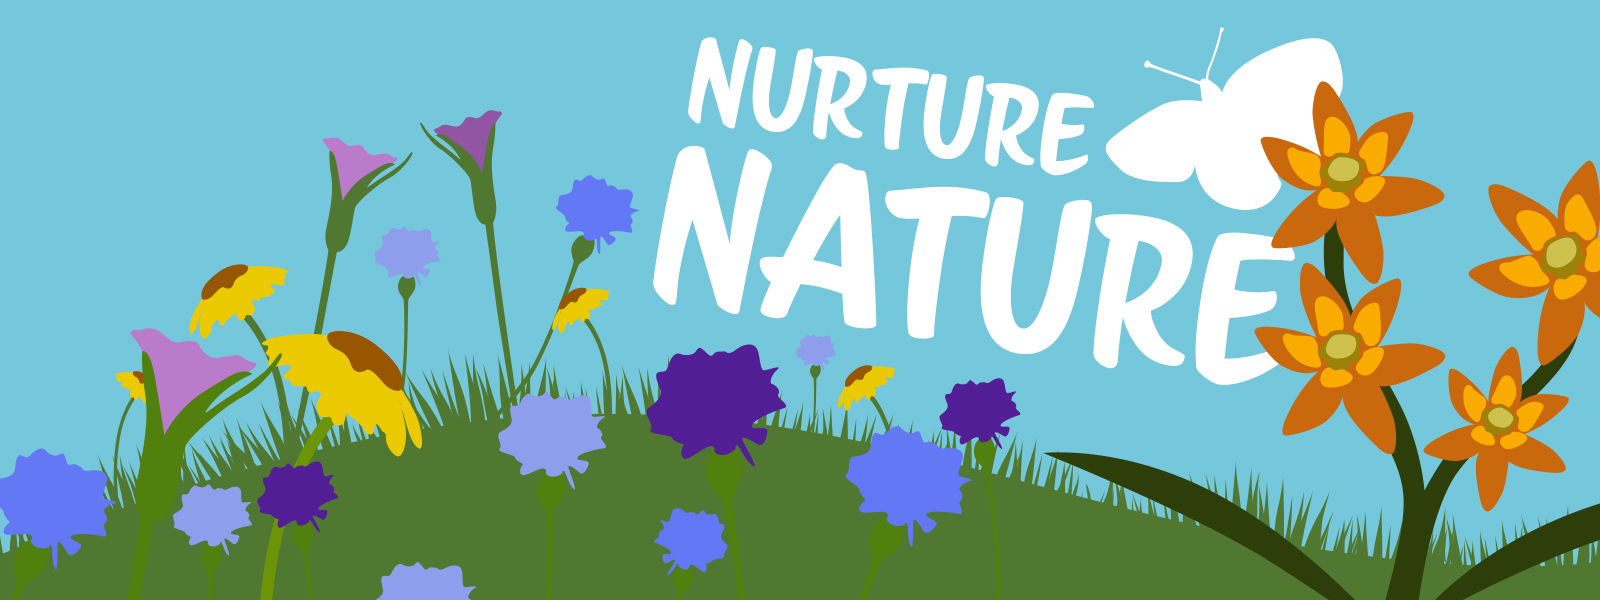 Nurture nature - Nurture images download ...